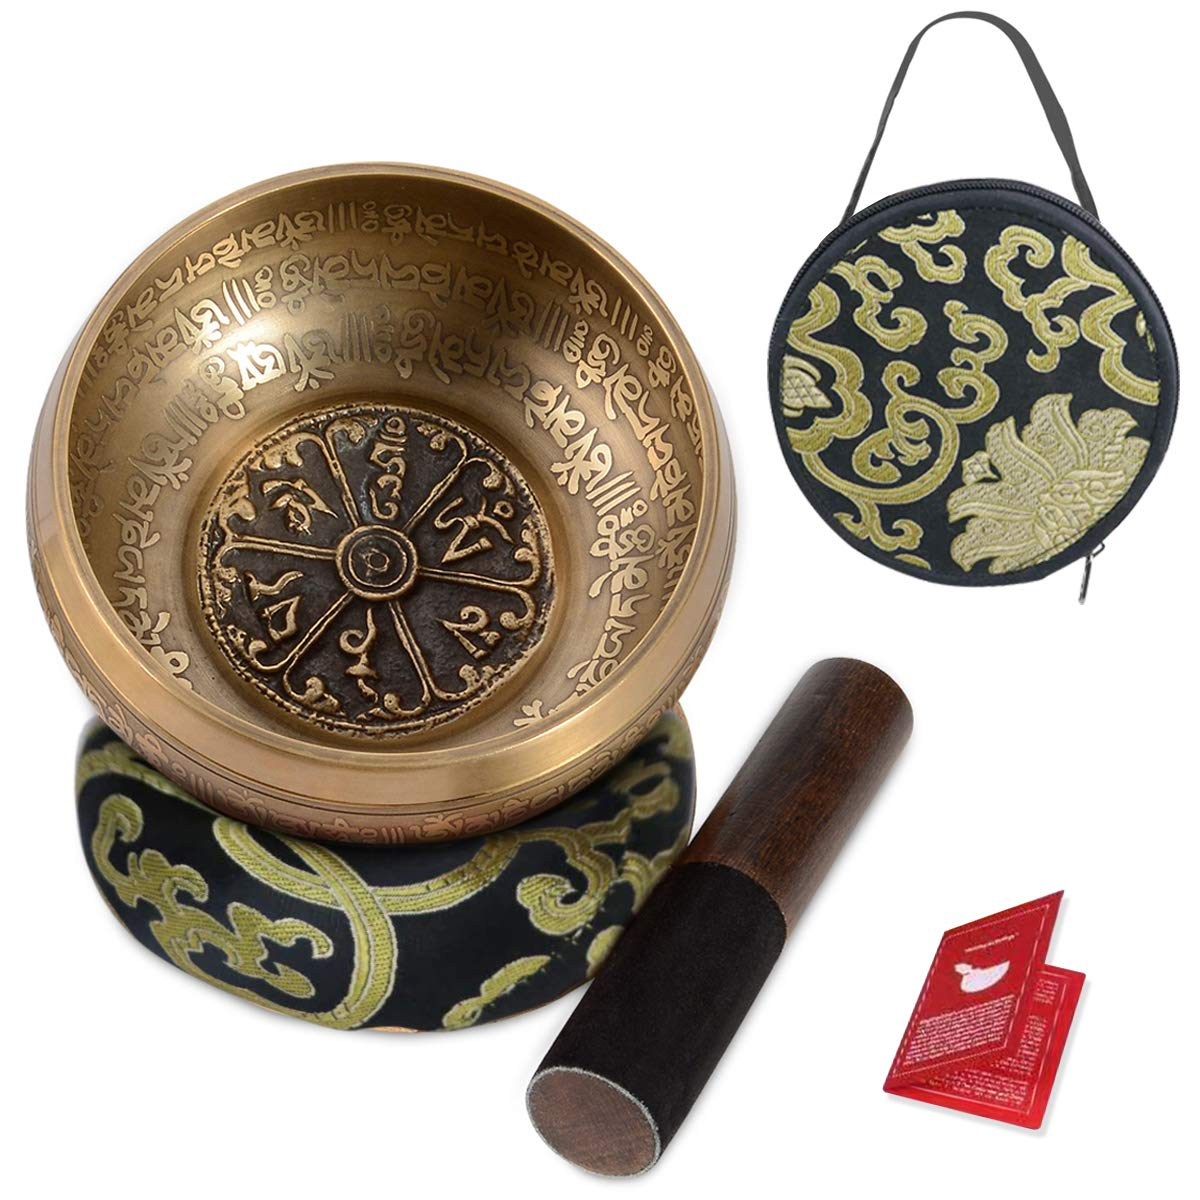 SHANSHUI 5'' Tibetan Singing Bowl Set, Nepal Antique Bronze Mantra Carving Hand Hammered, Sound For Yoga Chakras Healing Meditation Zen With Leather Striker Surface Mallet and Silk Cushion Gift -Black by SHANSHUI